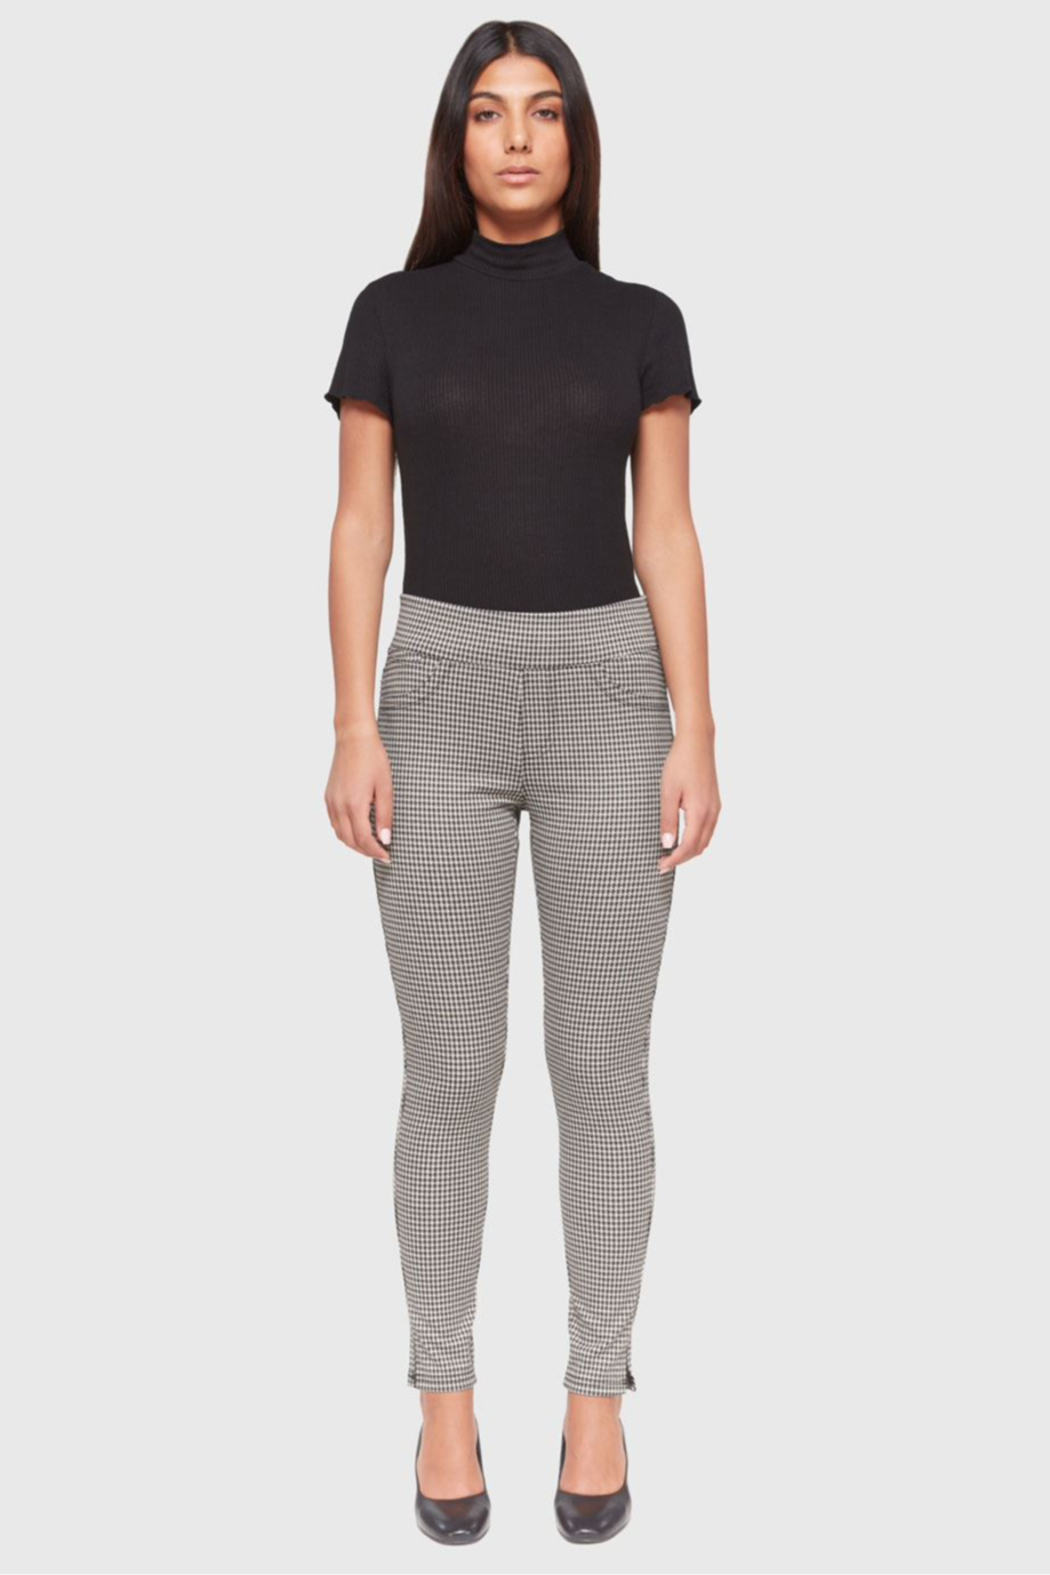 Lola Jeans Anna Houndstooth Jacquard Mid Rise Pant - Back Cropped Image